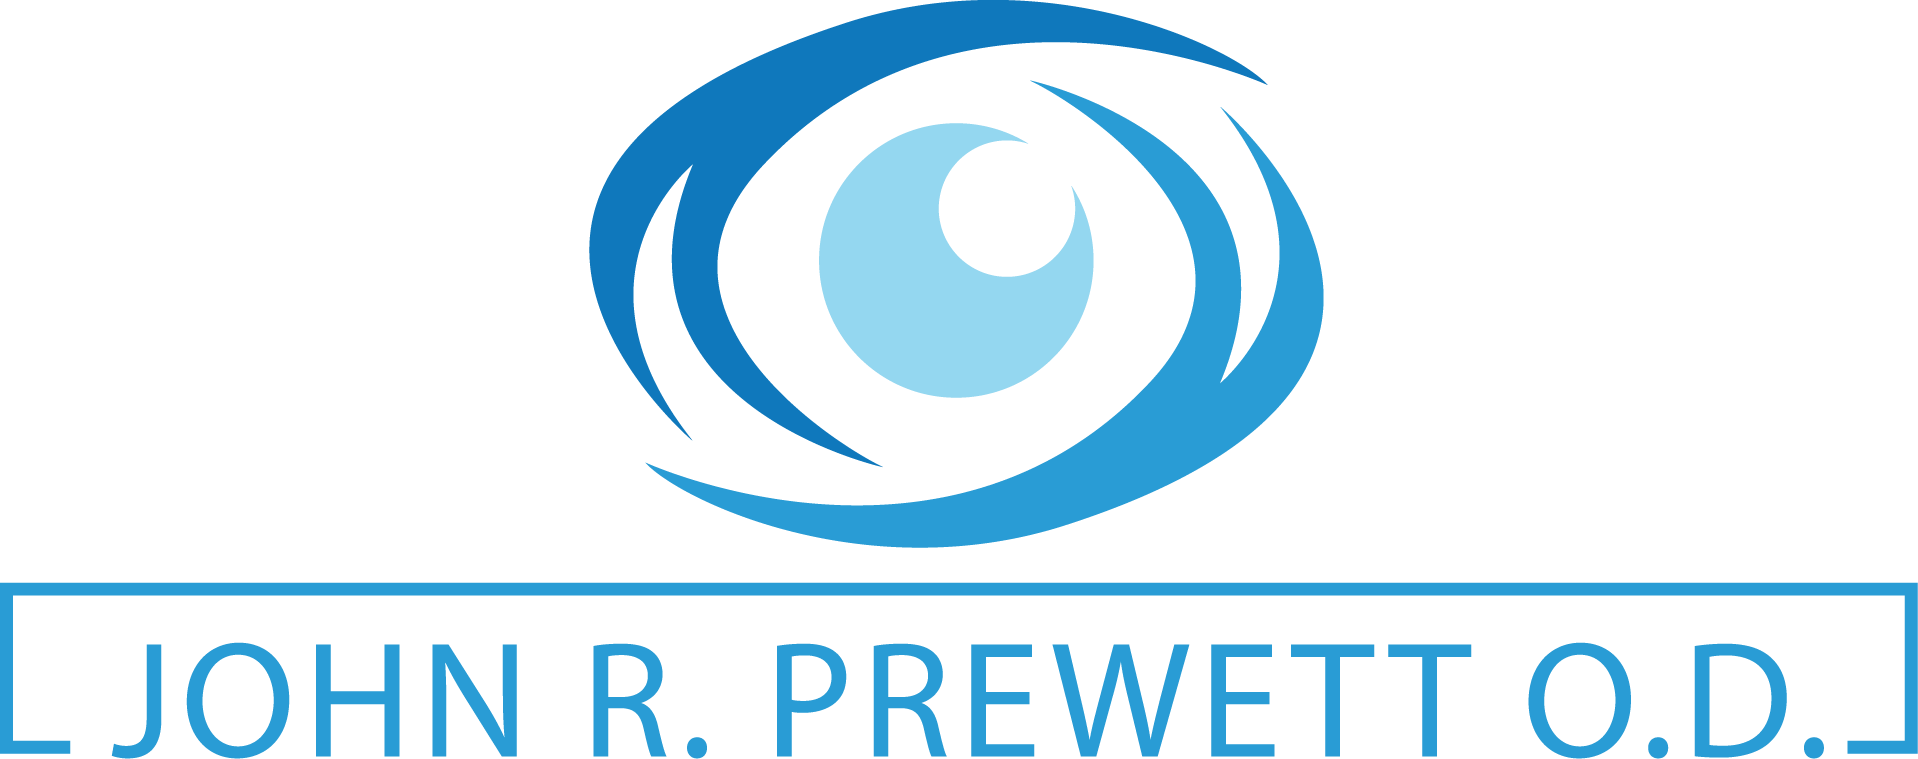 John R. Prewett Optometry